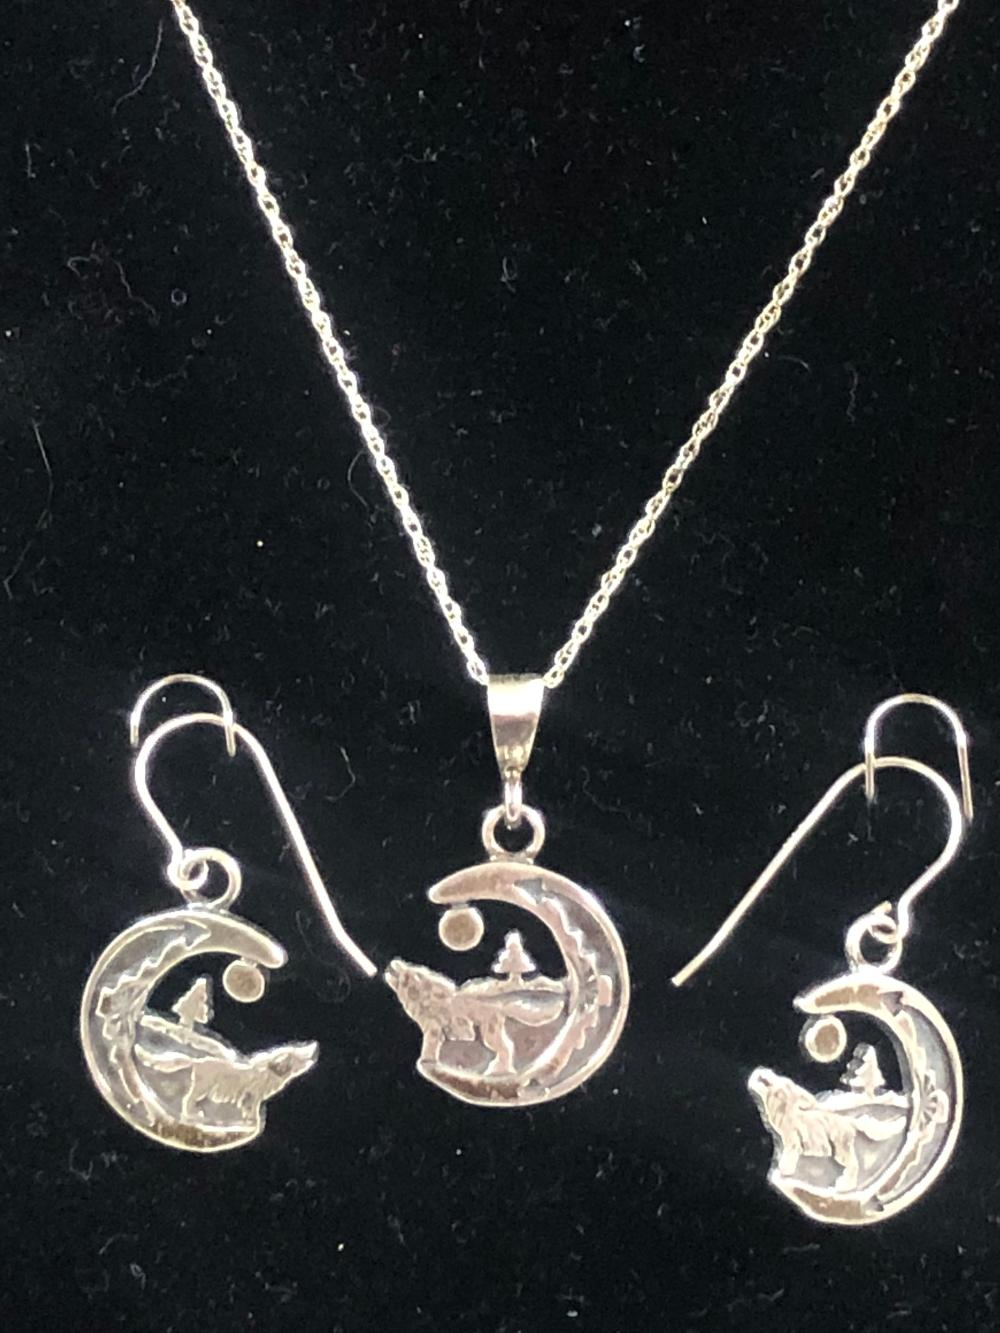 Sterling silver wolf in moon necklace and earring set